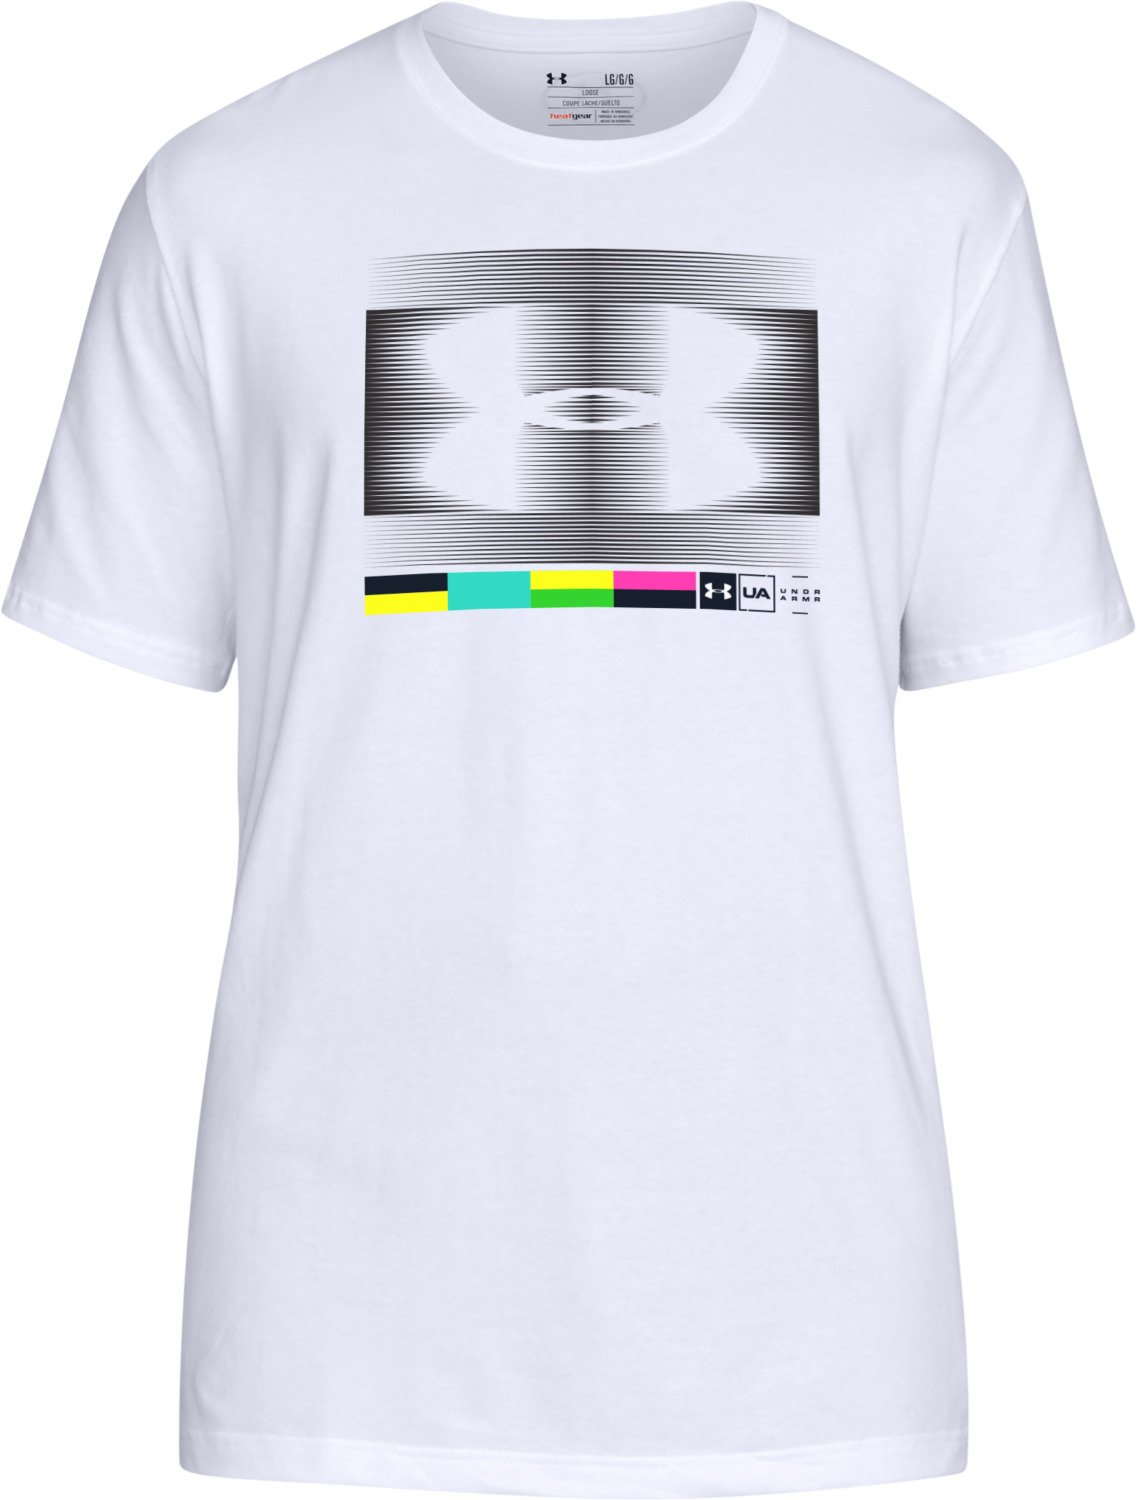 Under Armour Men's Graphic T-shirt - view number 2